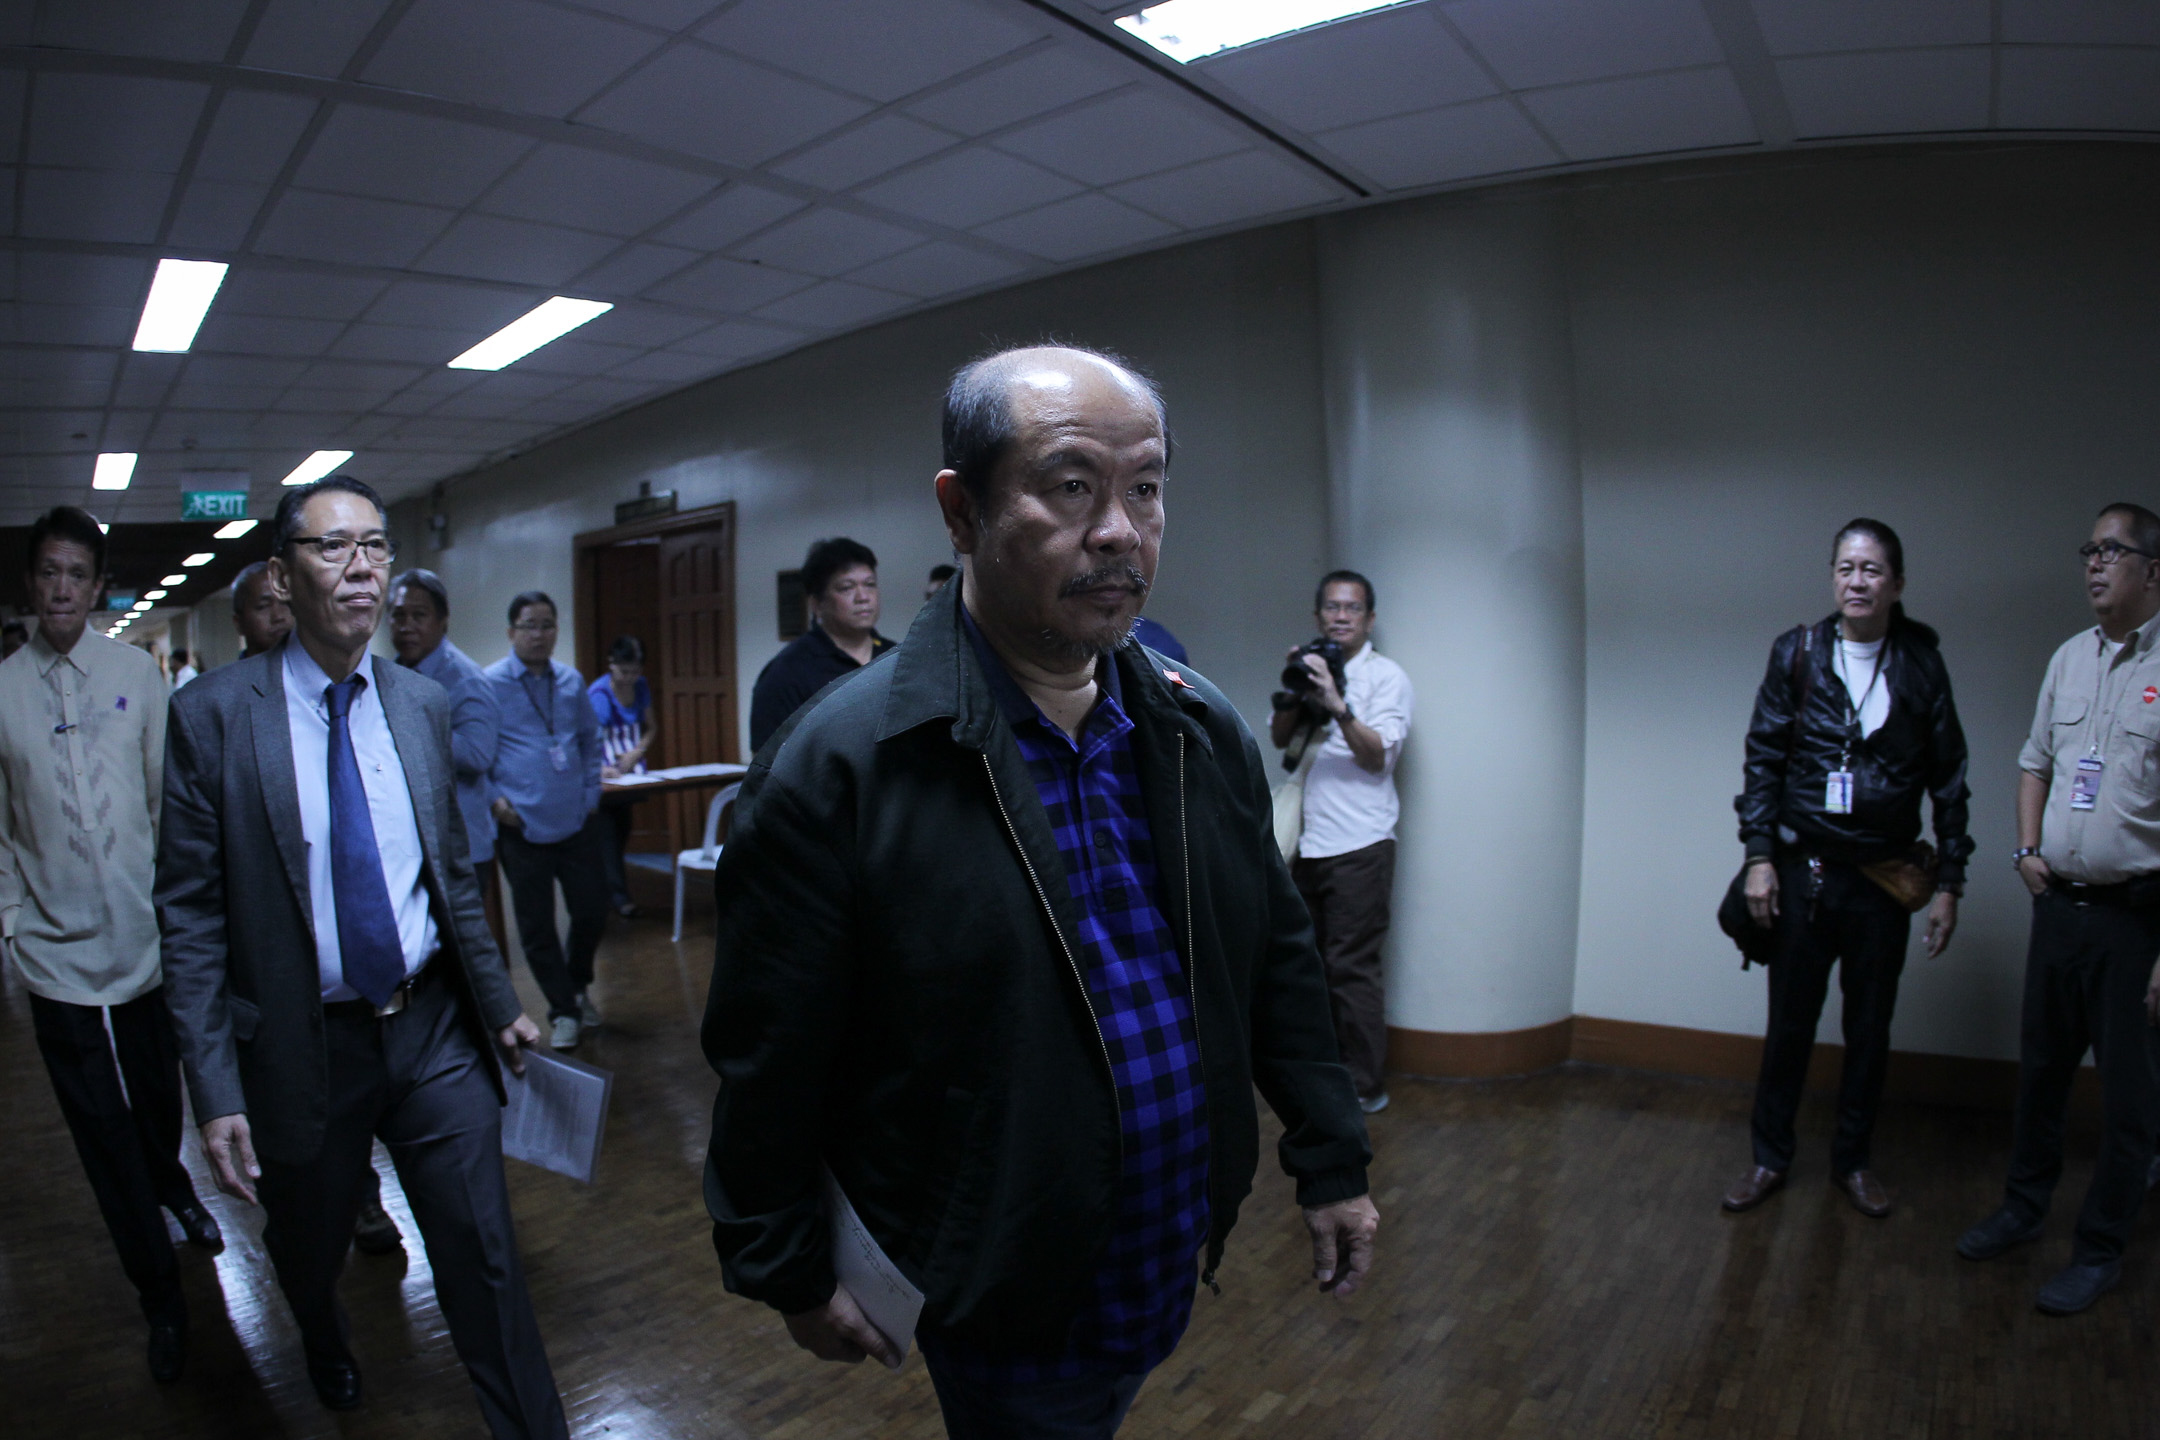 FLAG LAWYERS. Veteran human rights lawyers walk behind retired policeman Arturo Lascau00f1as before their press conference on Monday, February 17, 2017.